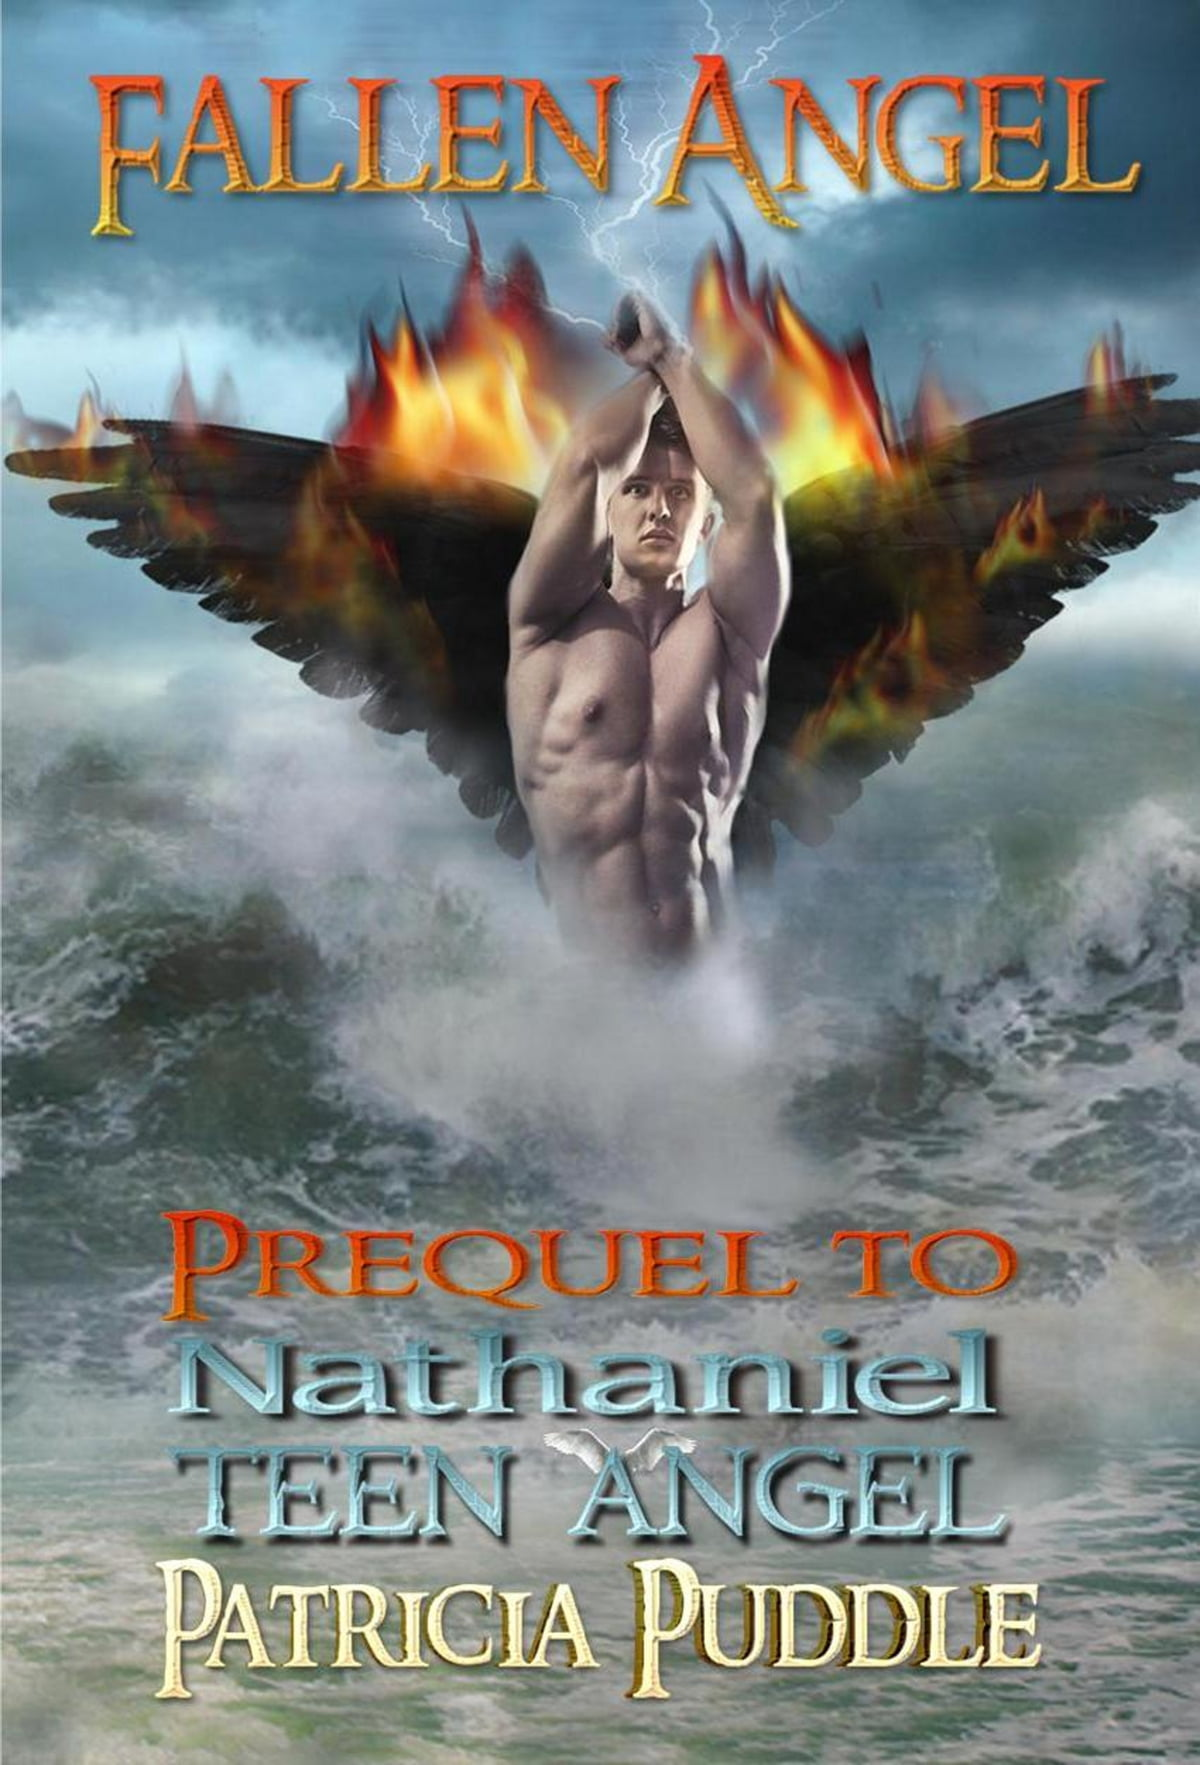 Fallen Angel Prequel To Nathaniel Teen Angel Ebook By Patricia Puddle 9781311253781 Rakuten Kobo